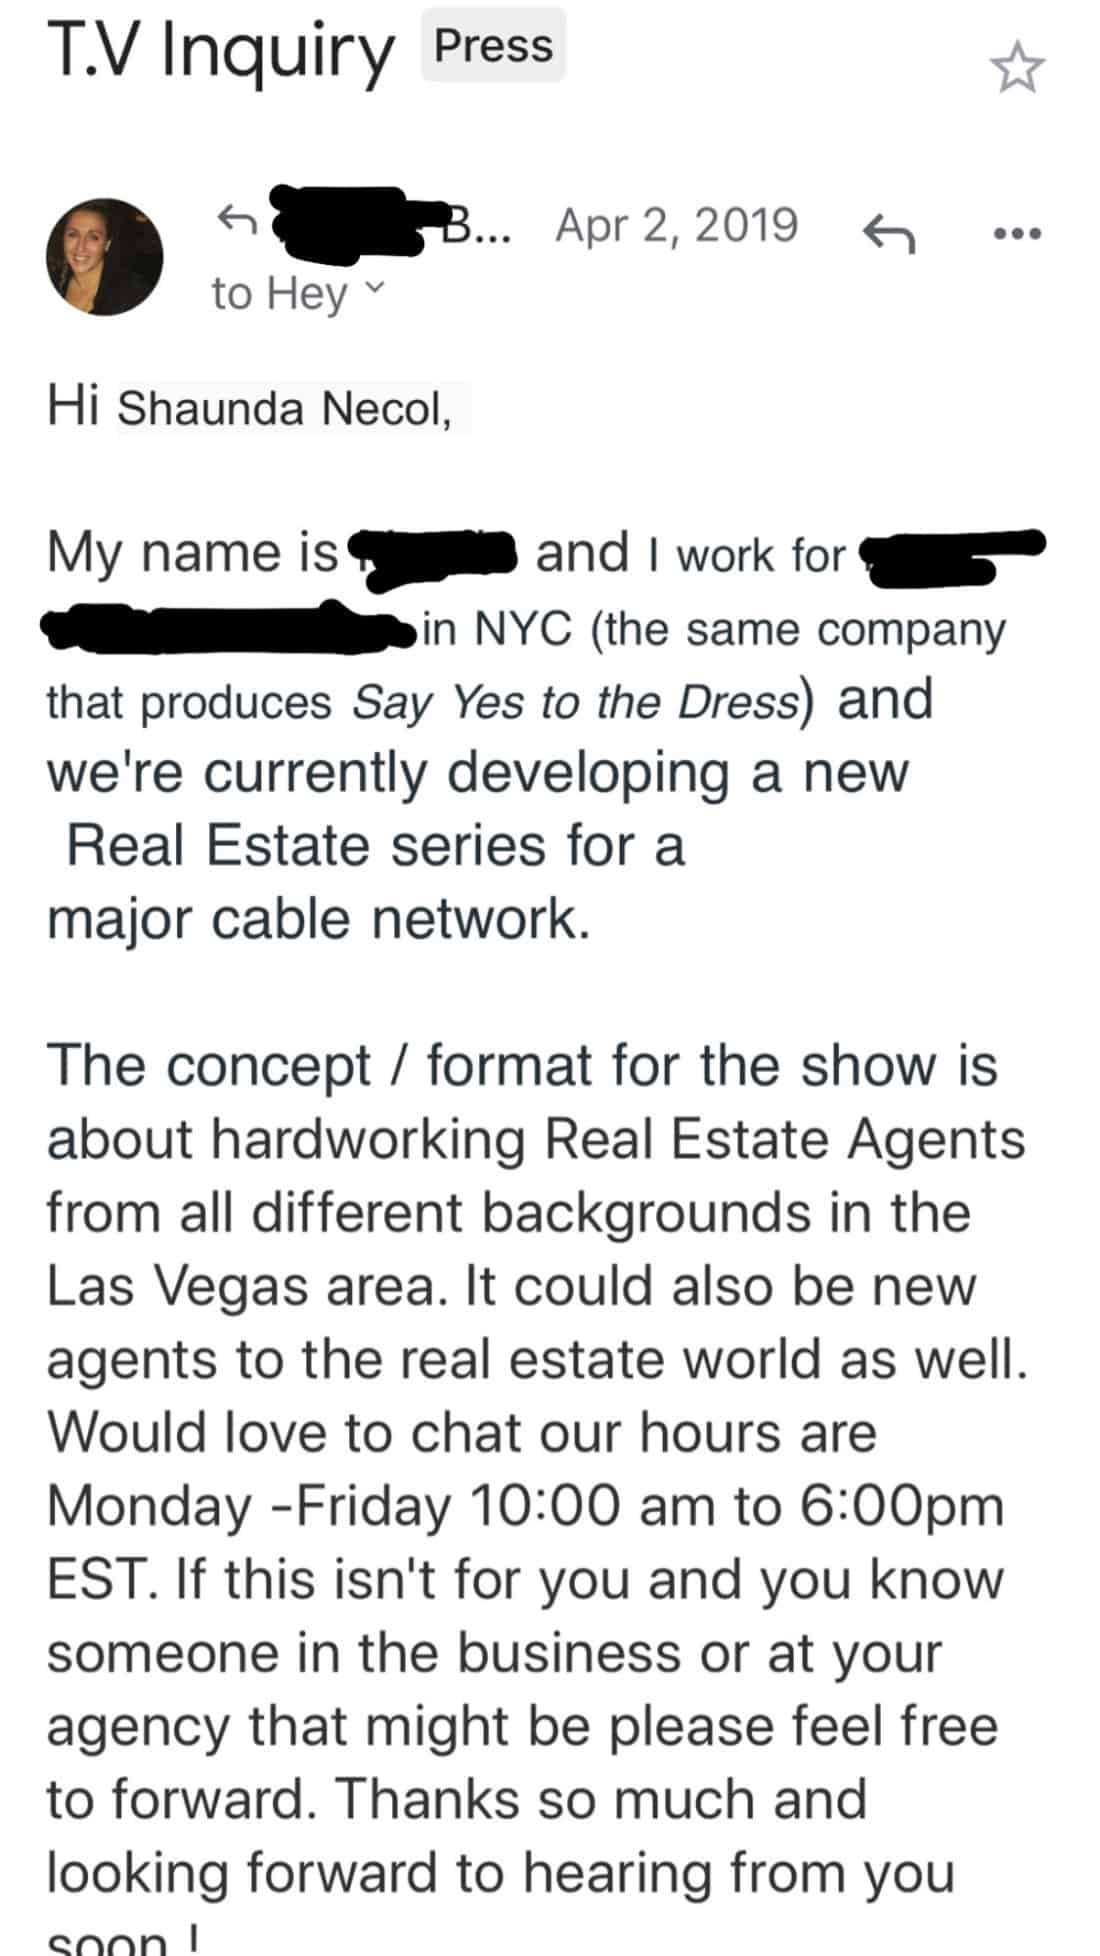 ow to Get Featured On TV Shows? Sample Email From a TV Producer